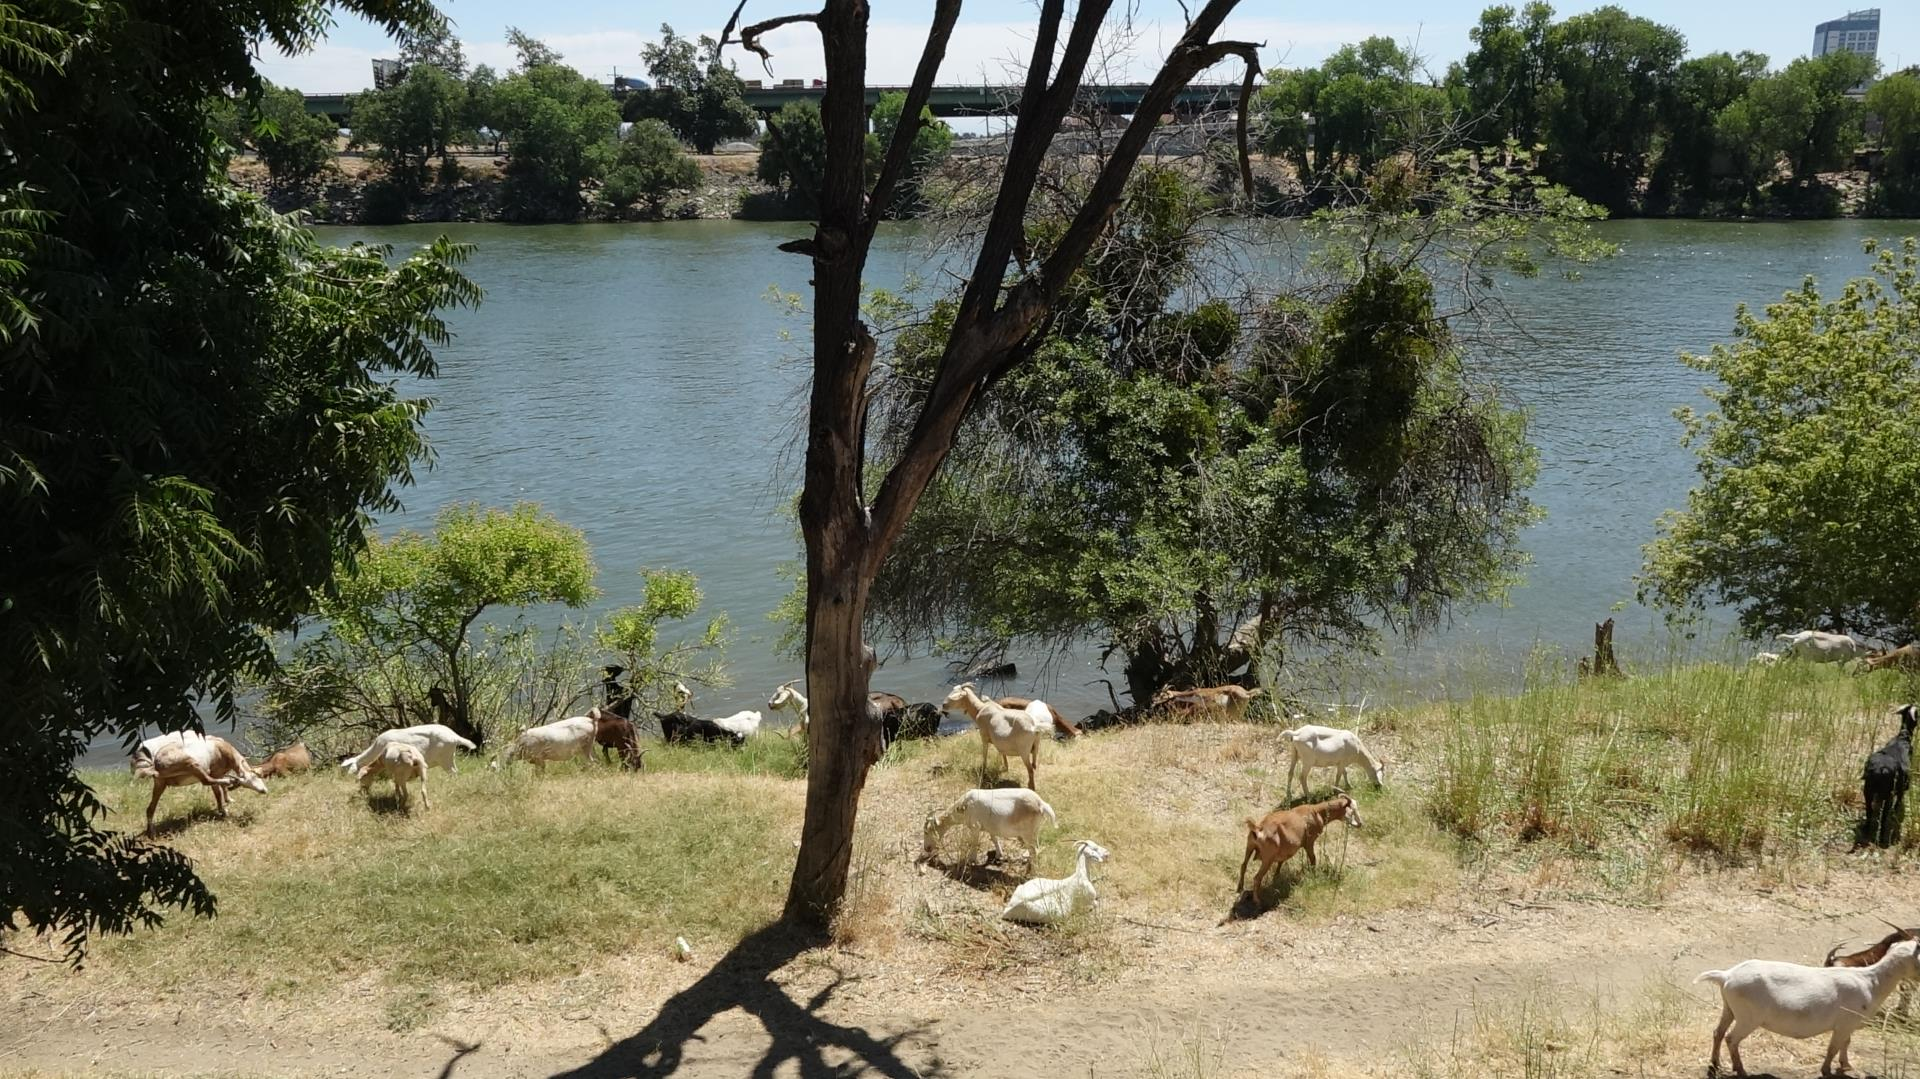 Group of goats by the Sacramento River